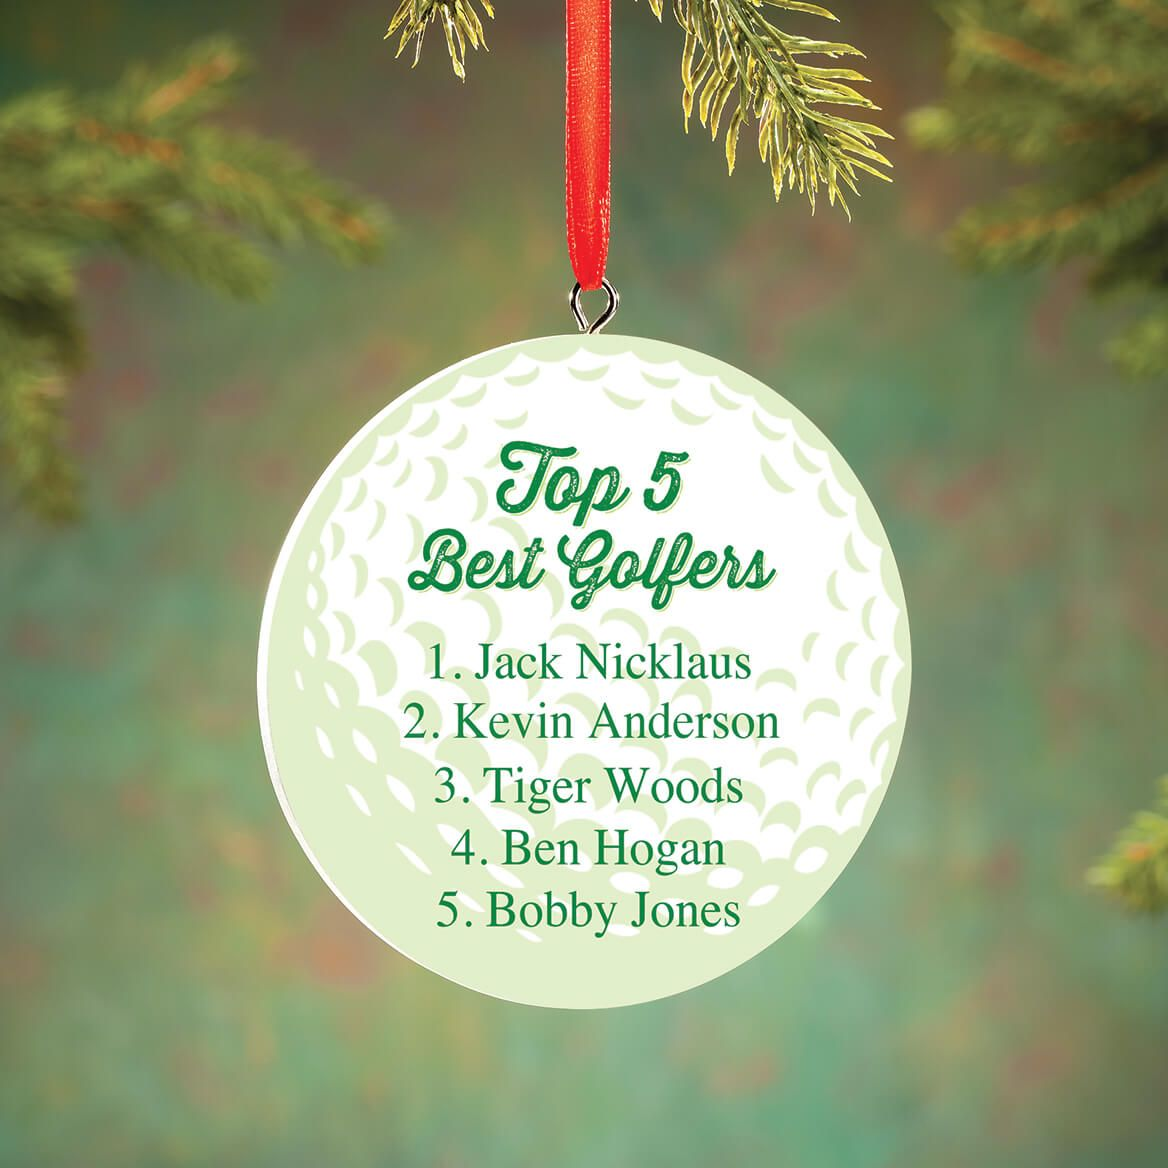 Personalized Best Golfers Ornament-372720